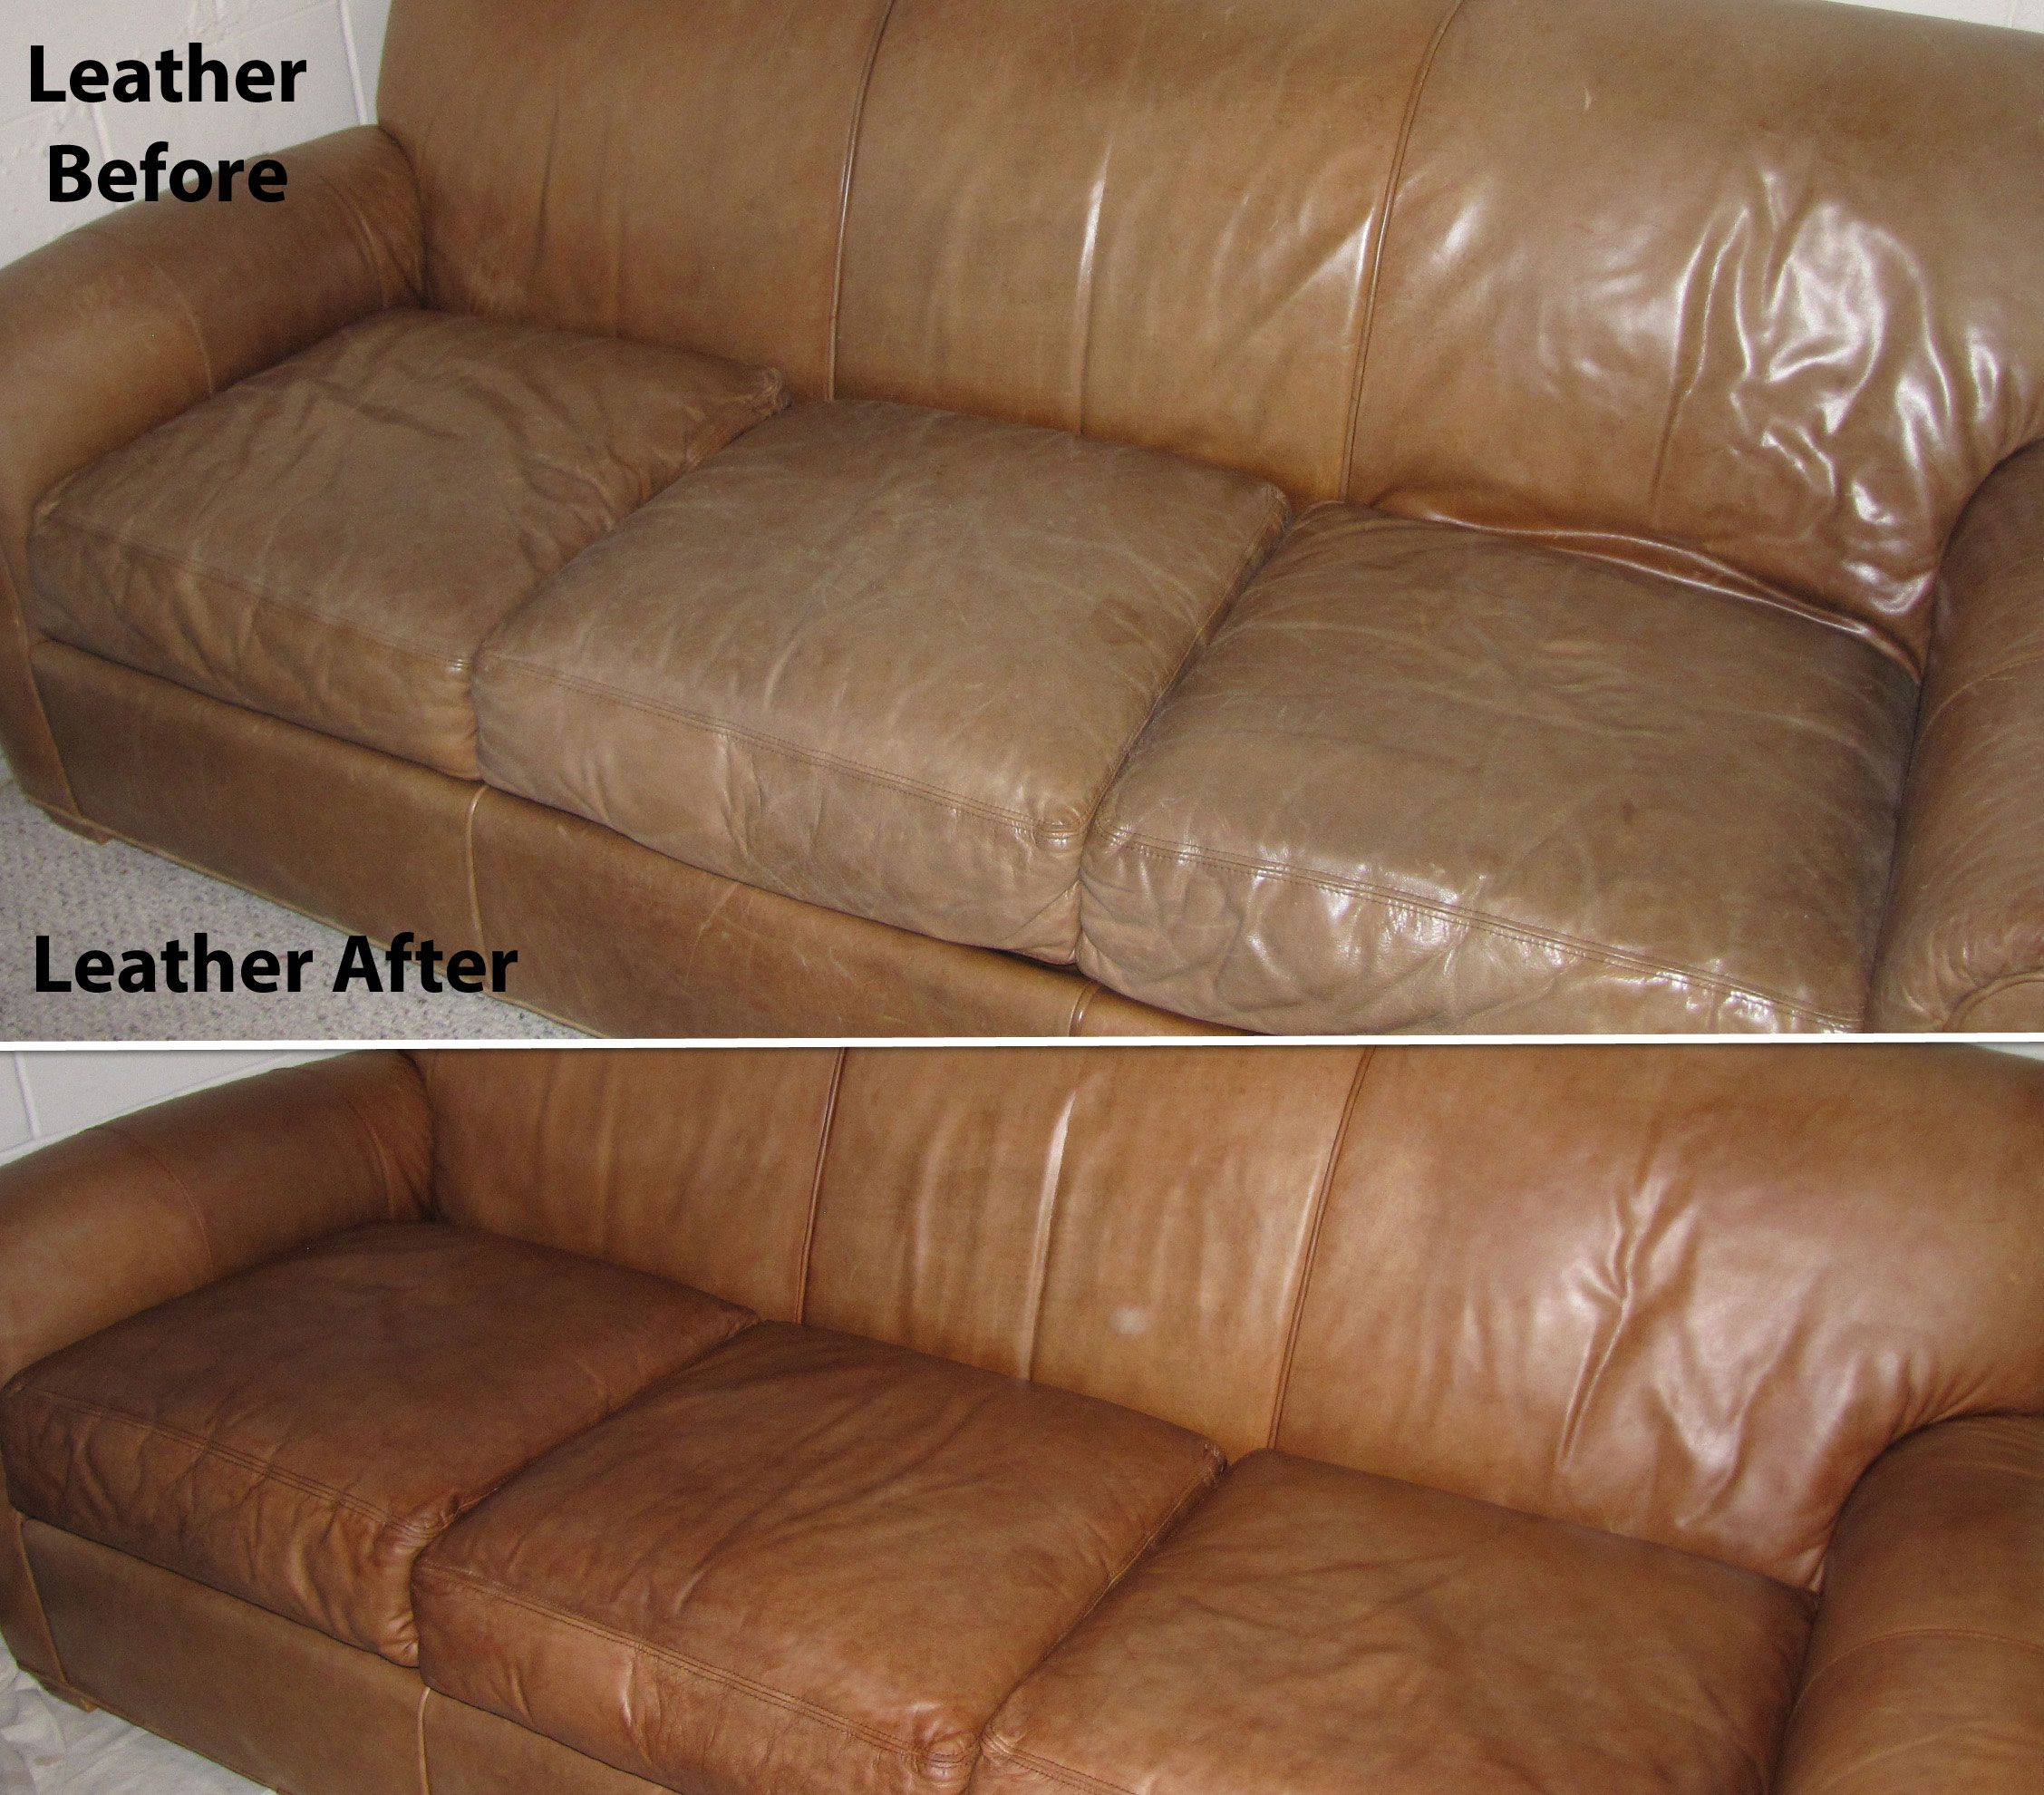 Groovy Leather Sofa Dry Cleaning Services Noida Clean Sofa Pabps2019 Chair Design Images Pabps2019Com